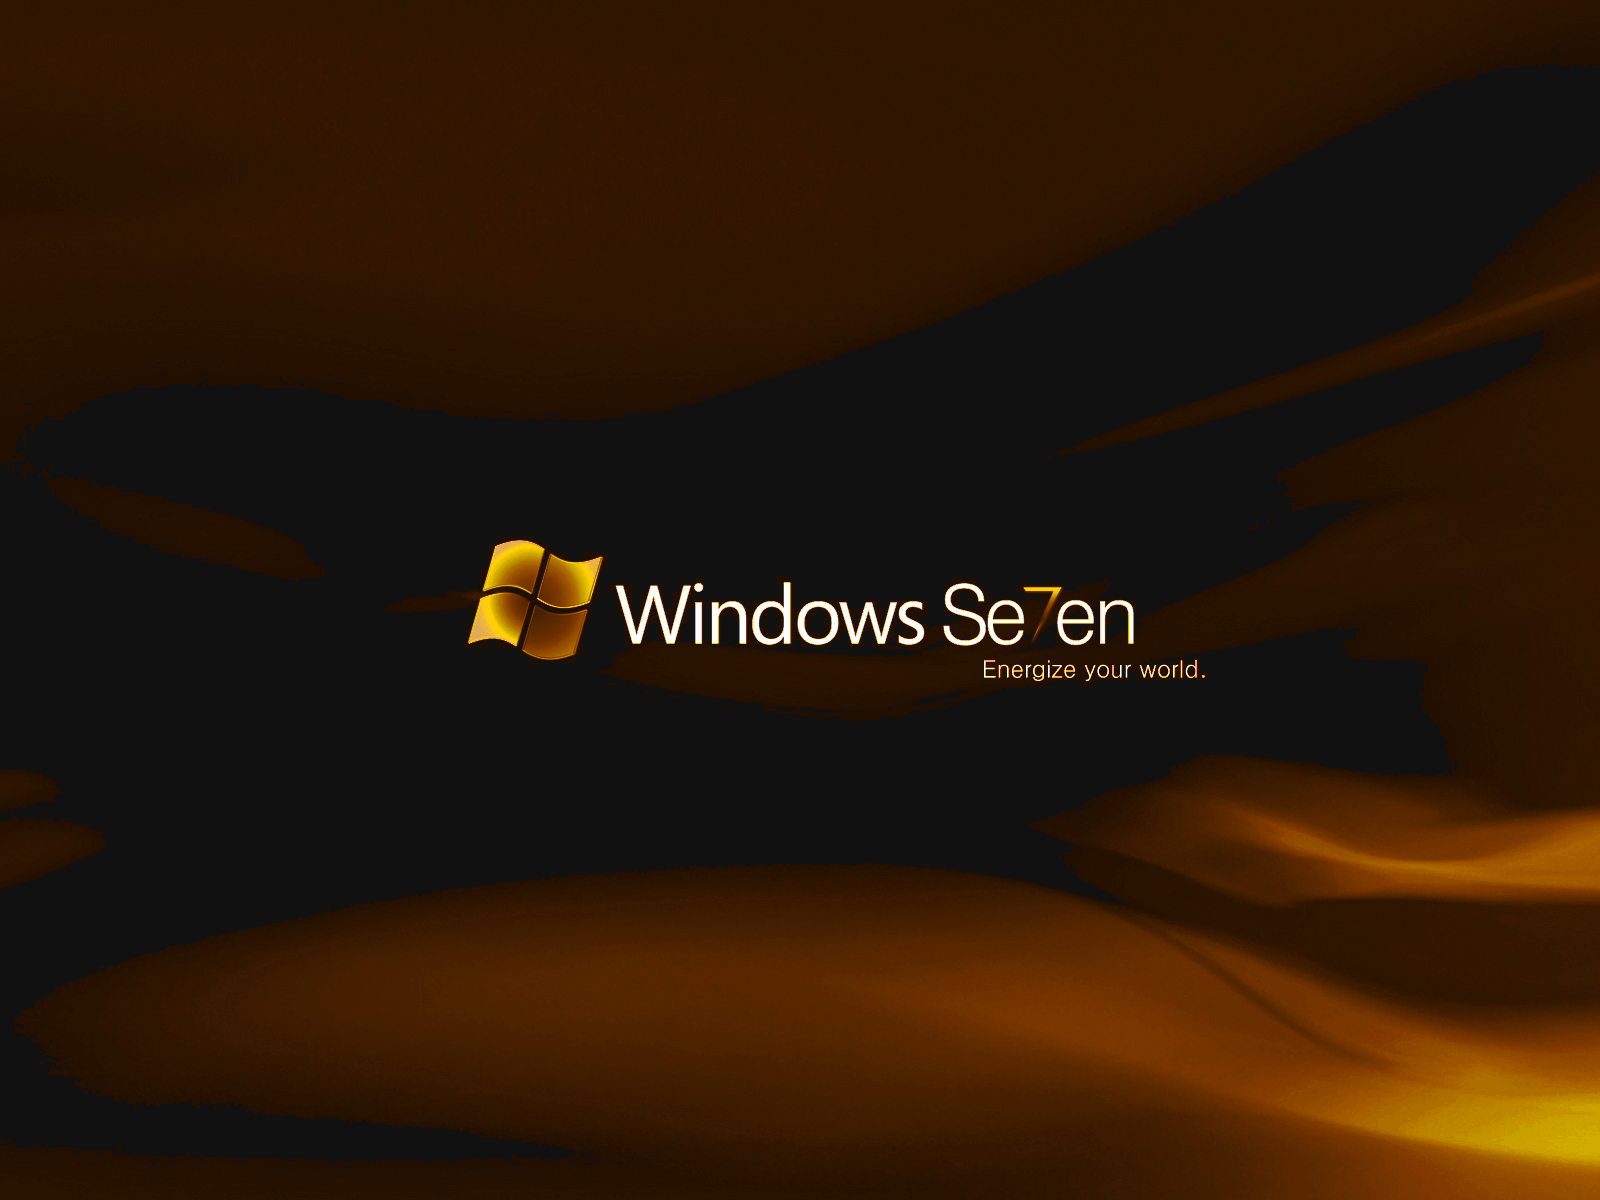 Live wallpaper for windows 7 professional